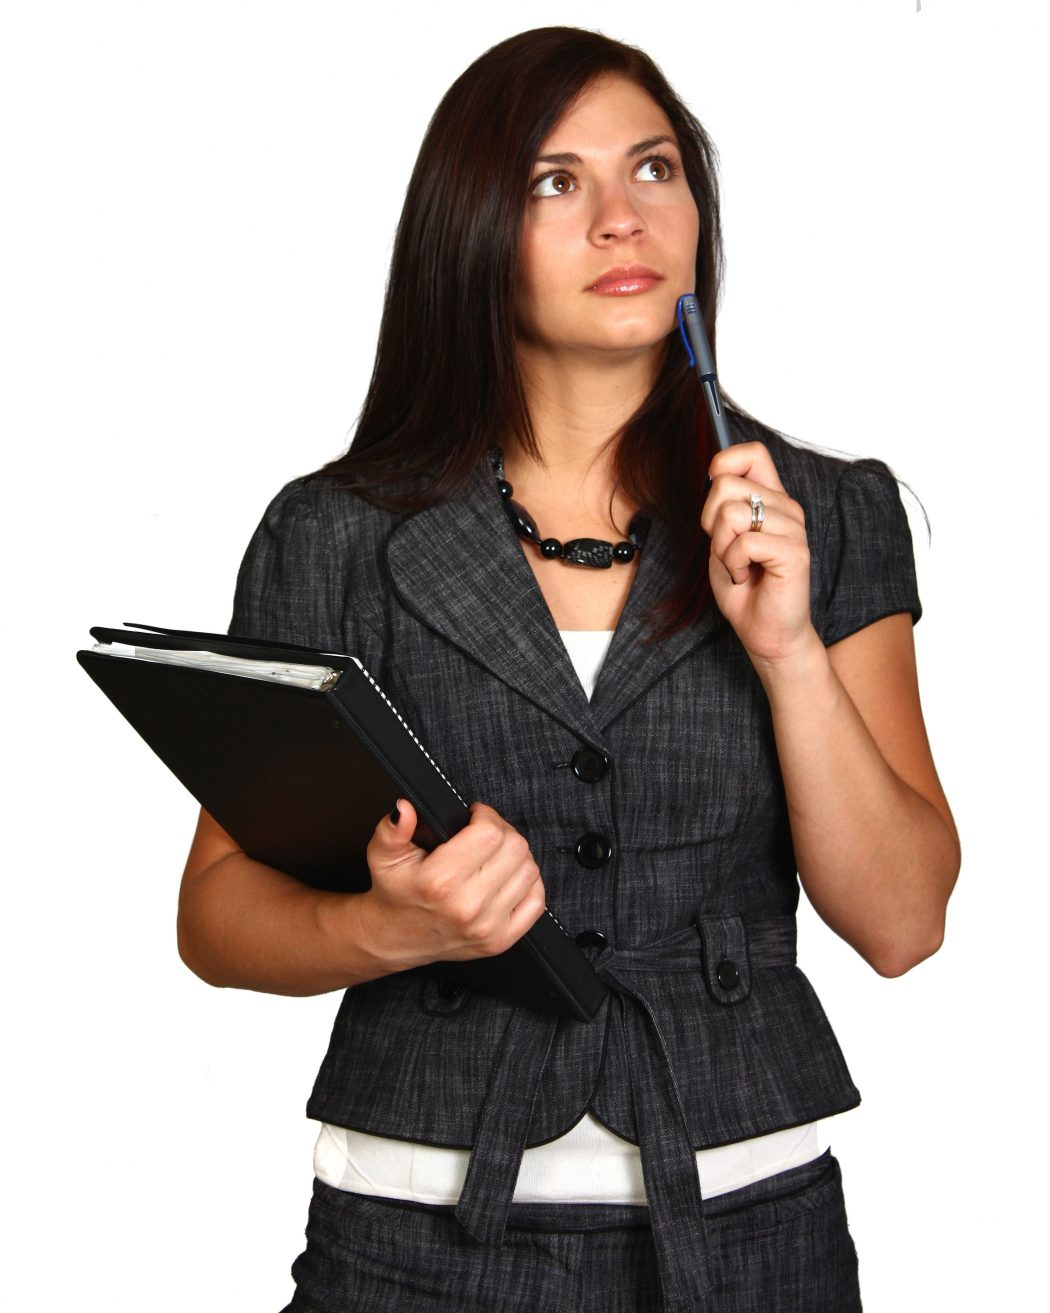 working-woman 12 Helpful Grooming Tips For Women in Traditional Workplaces